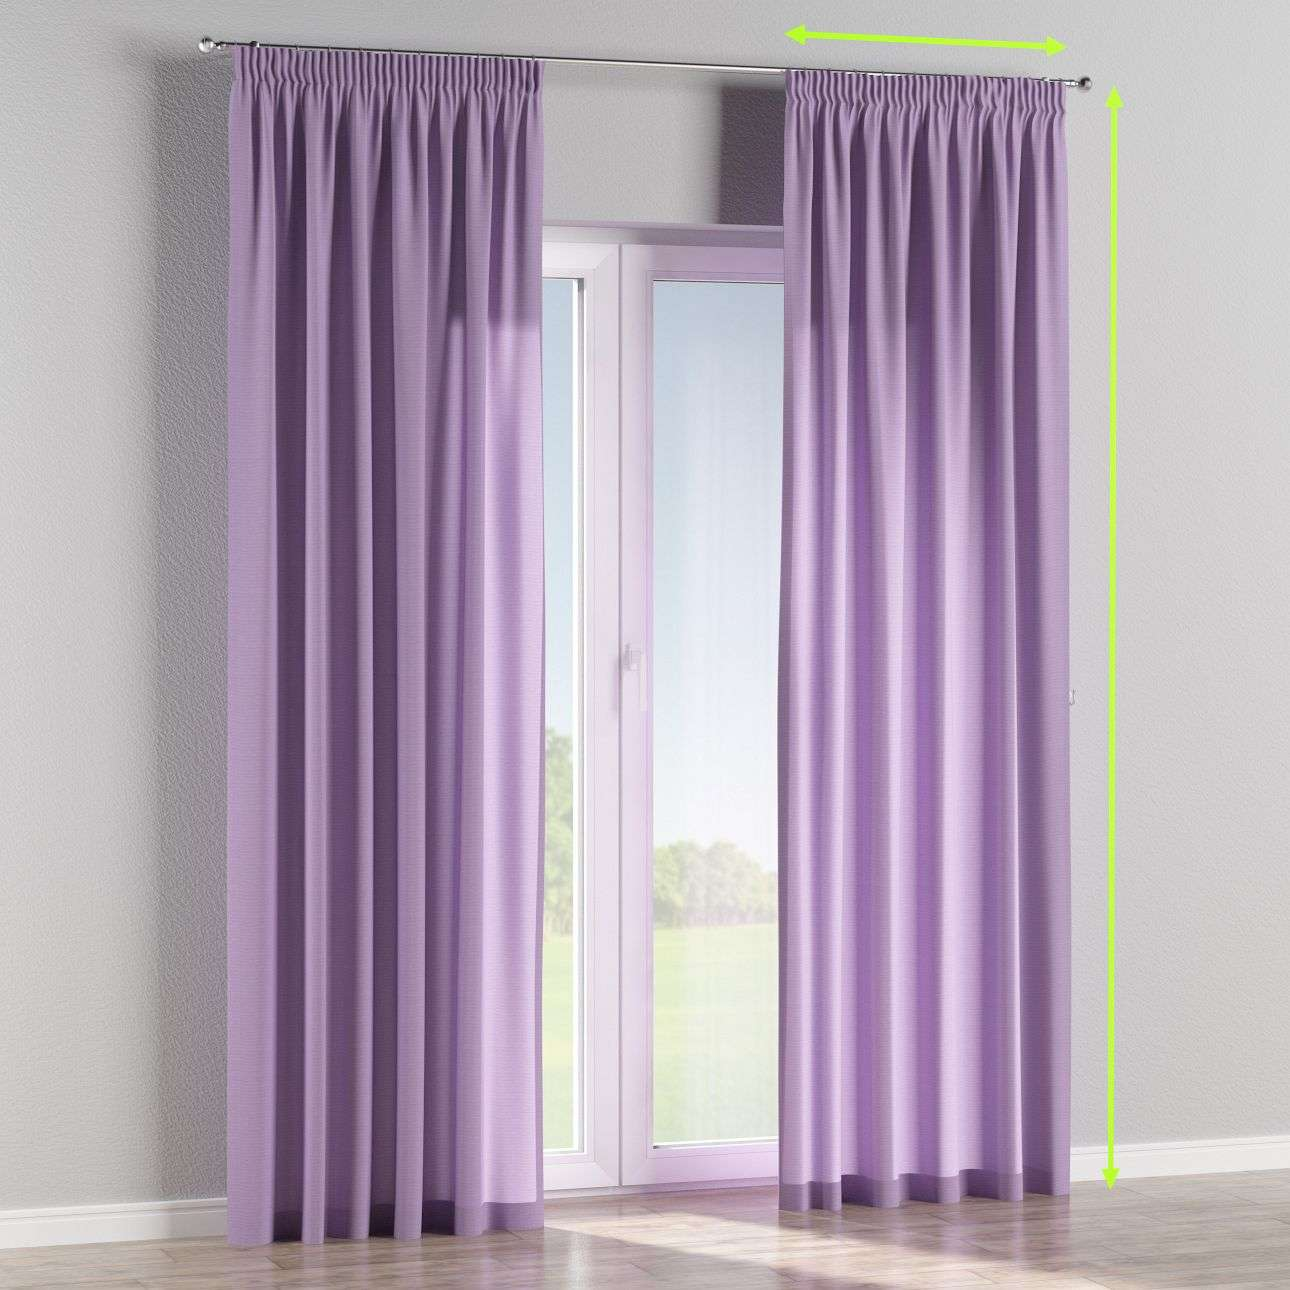 Pencil pleat lined curtains in collection Jupiter, fabric: 127-74